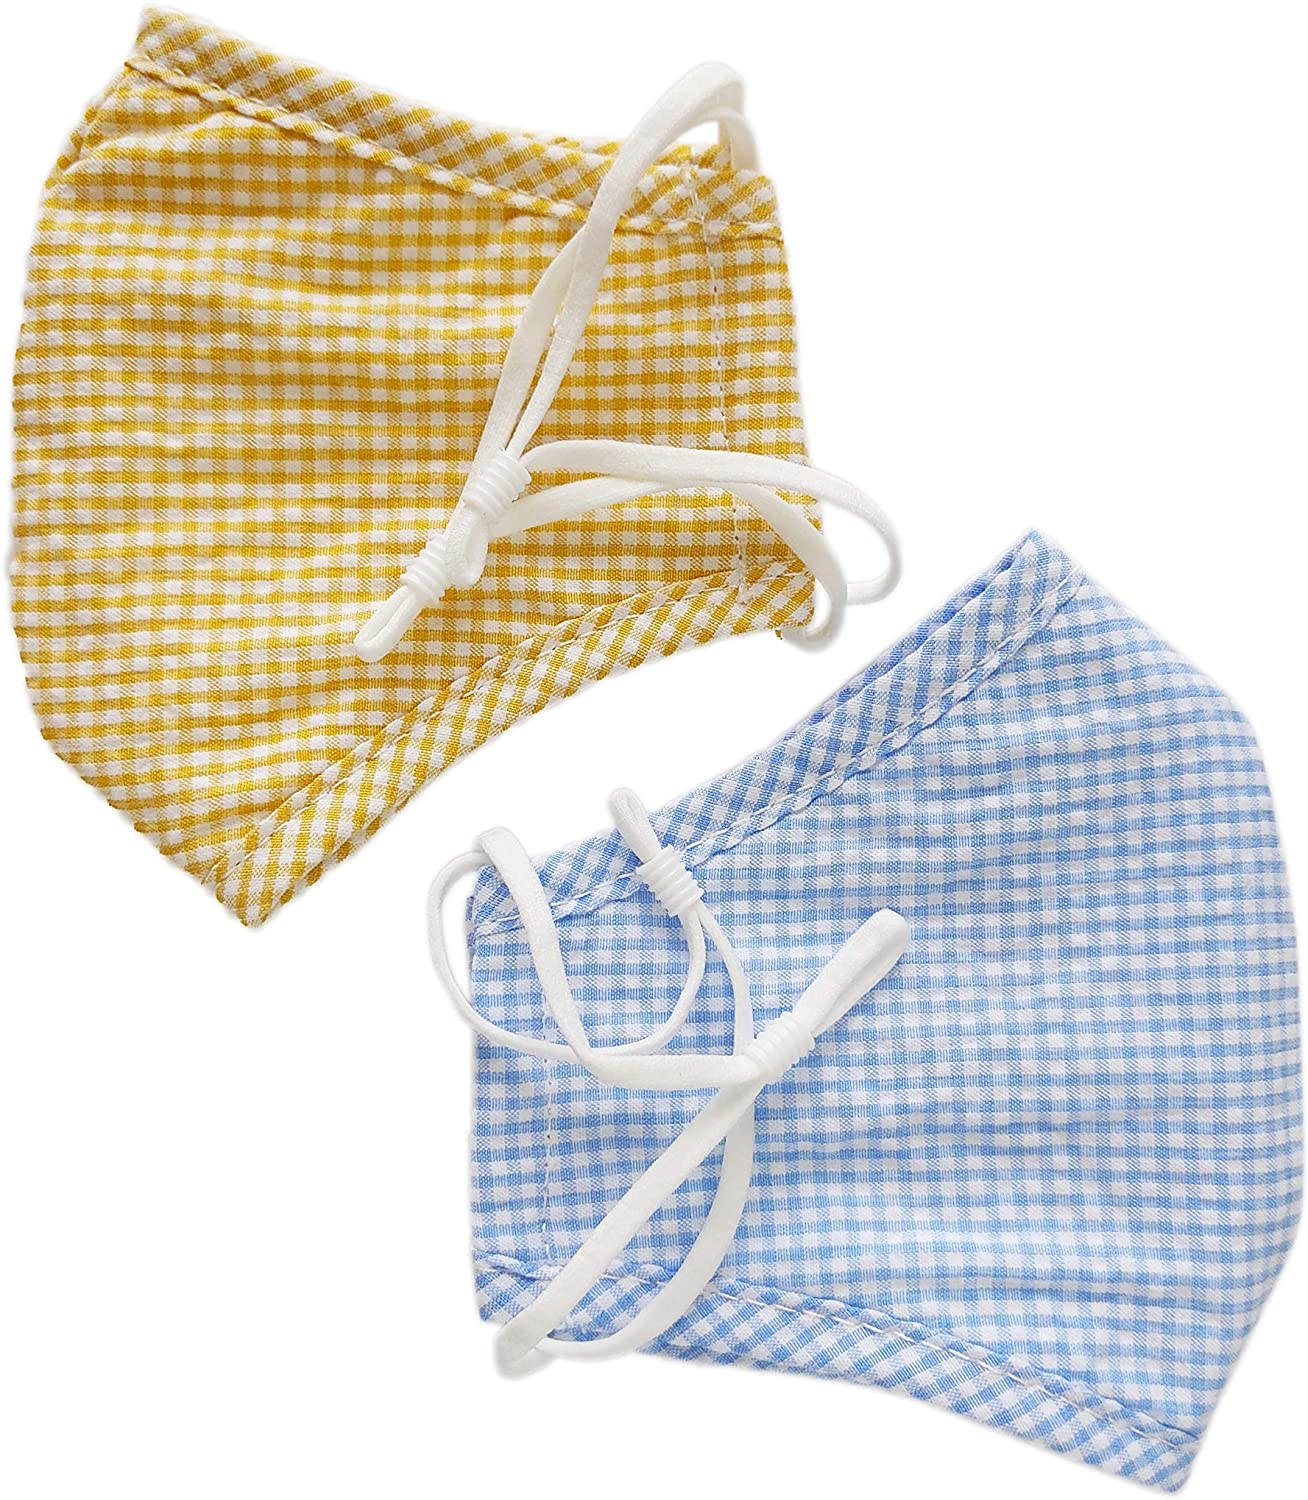 Tektide Cotton Face Covering,Triple Layers, Washable, Reusable, Easily Dried, 100% Cotton [Pack 2] [Mixed Color 3]